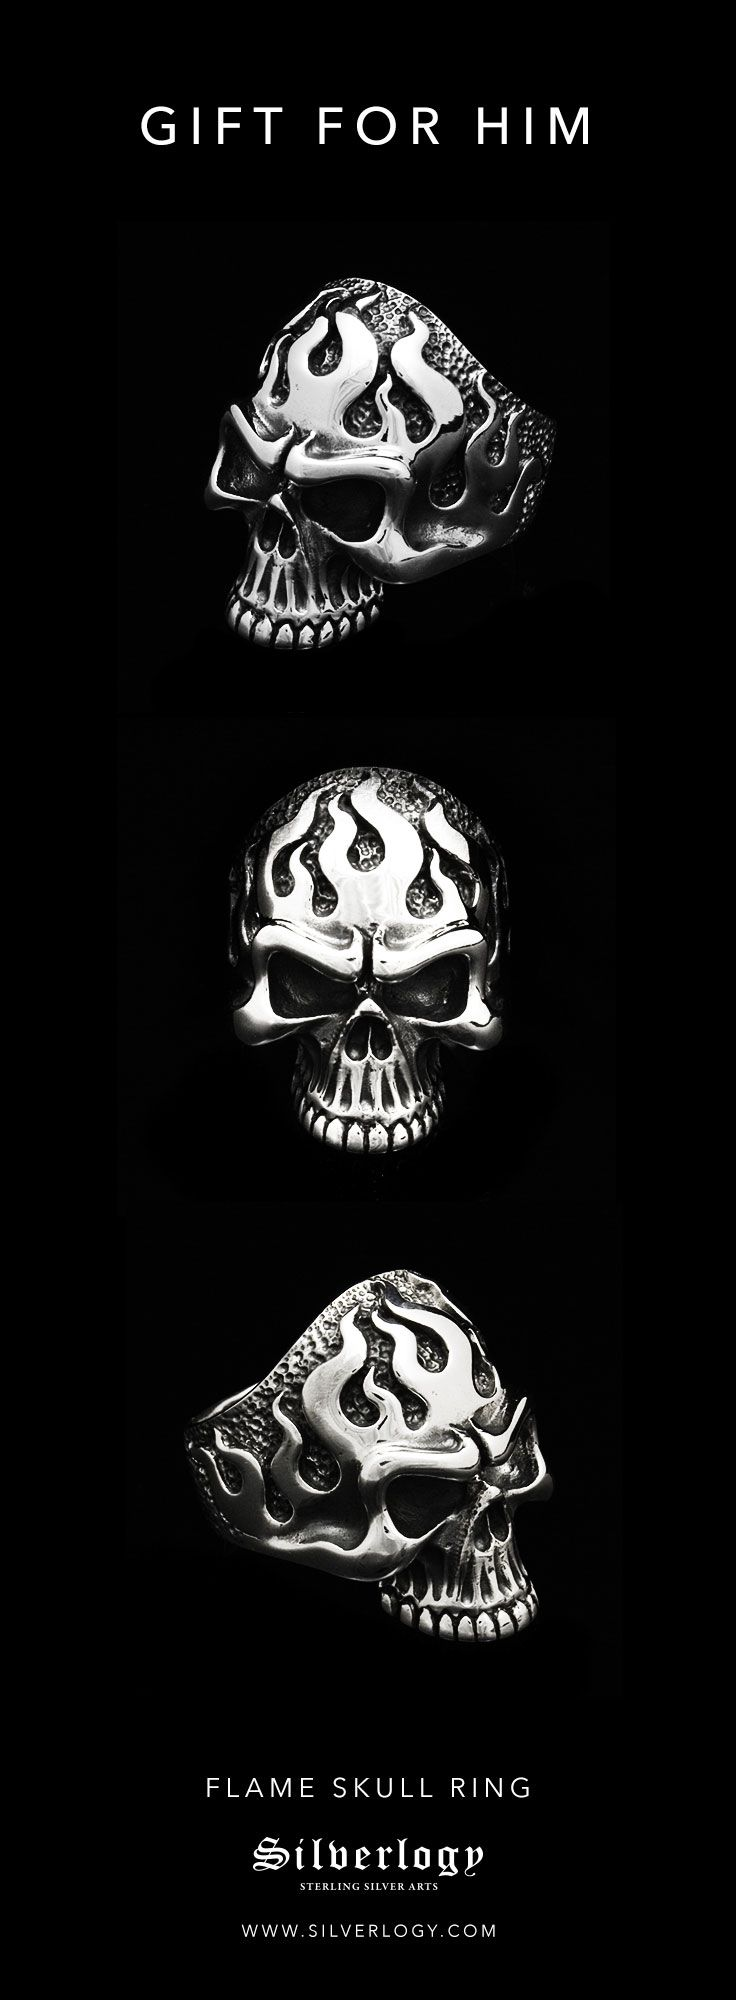 Sterling silver flame skull ring. A perfect gift for him. Check it out here: https://silverlogy.com/collections/skull-rings/products/flame-skull-ring?utm_source=pinterest&utm_campaign=flame_skull_ring